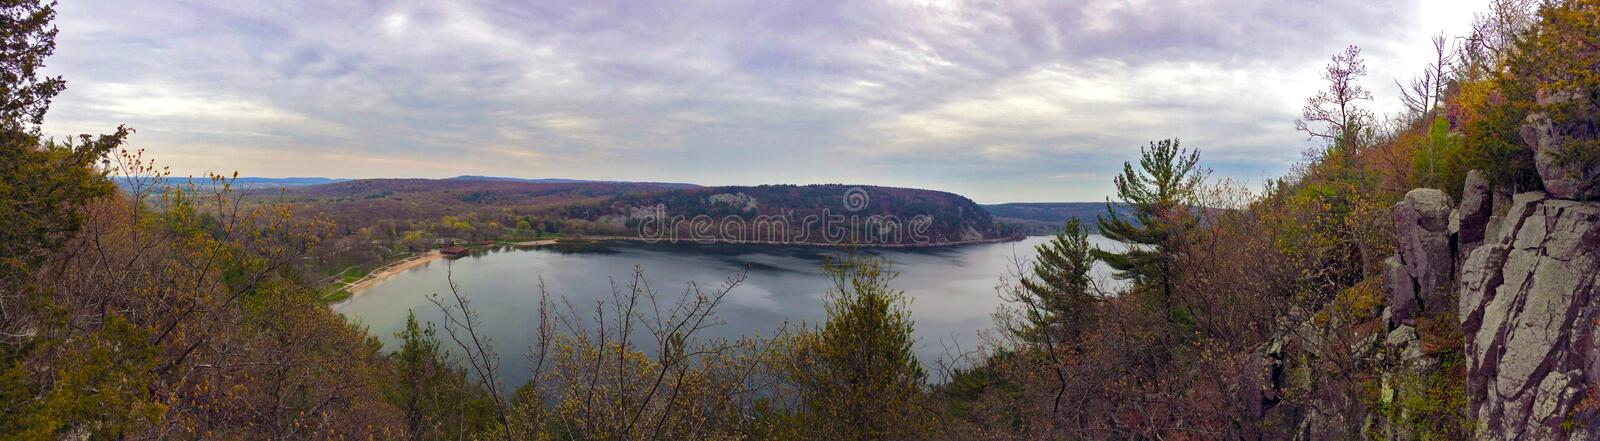 Devils Lake in Wisconsin. A view over the Devil's Lake, in the Baraboo Range in Sauk County, Wisconsin, USA royalty free stock images